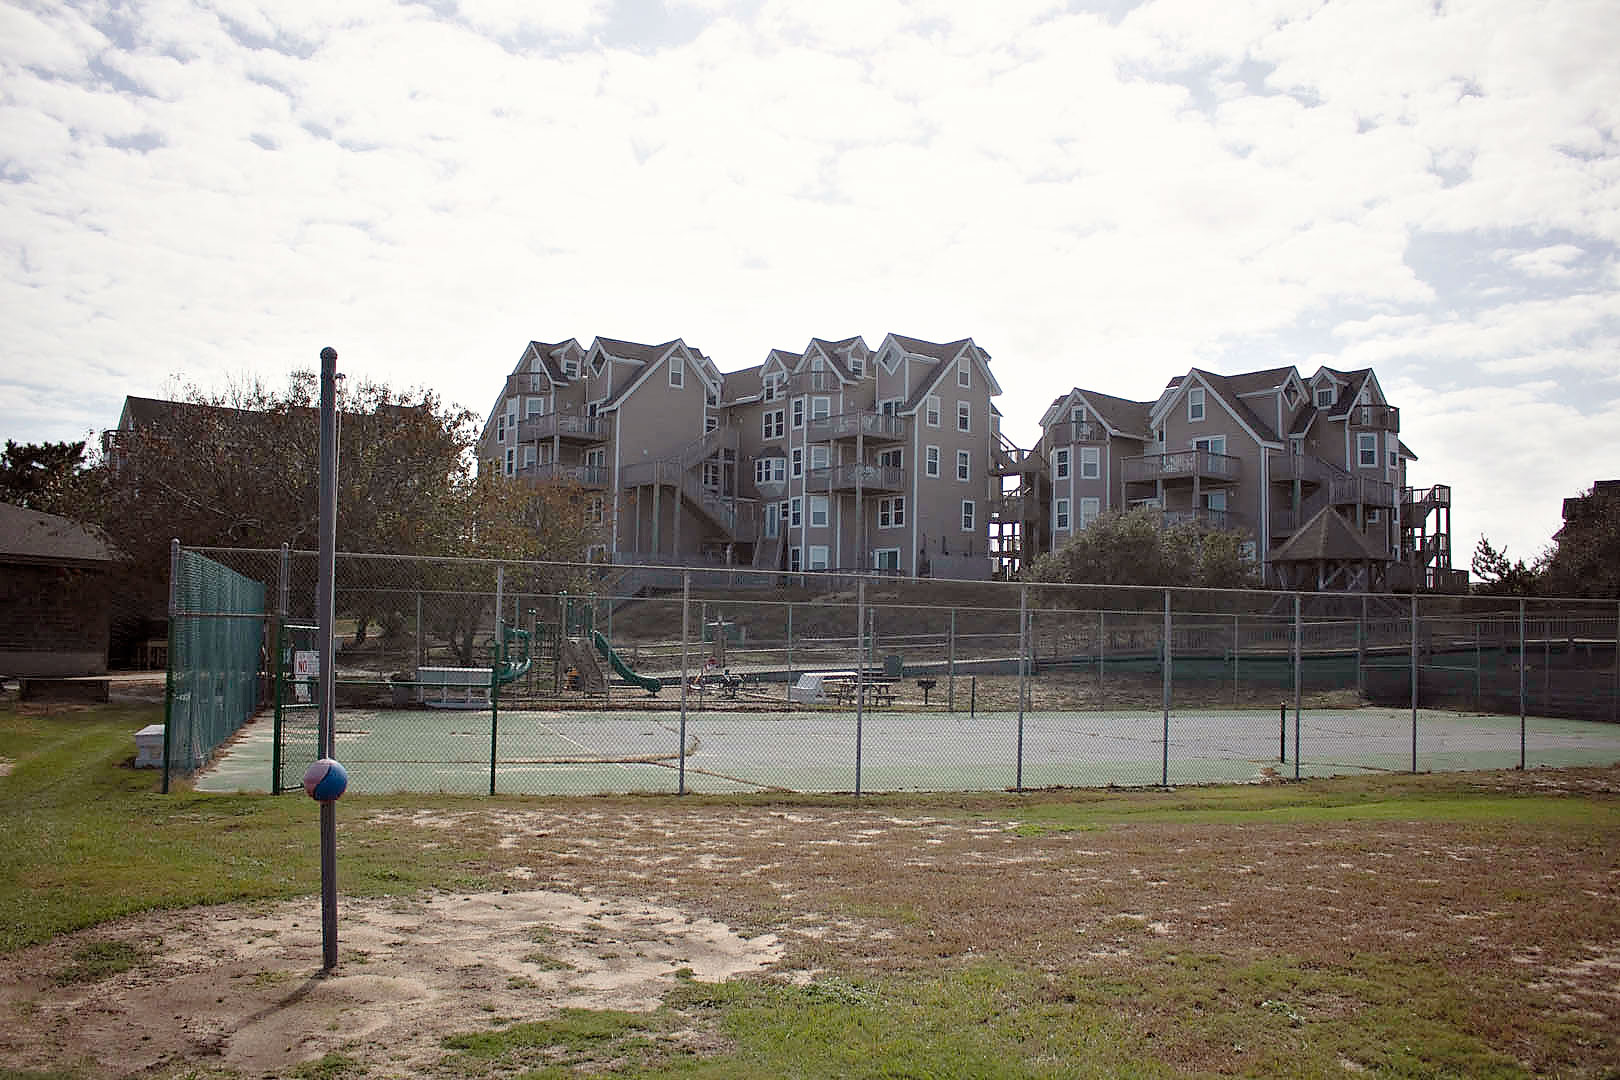 Tether Ball and Tennis Courts